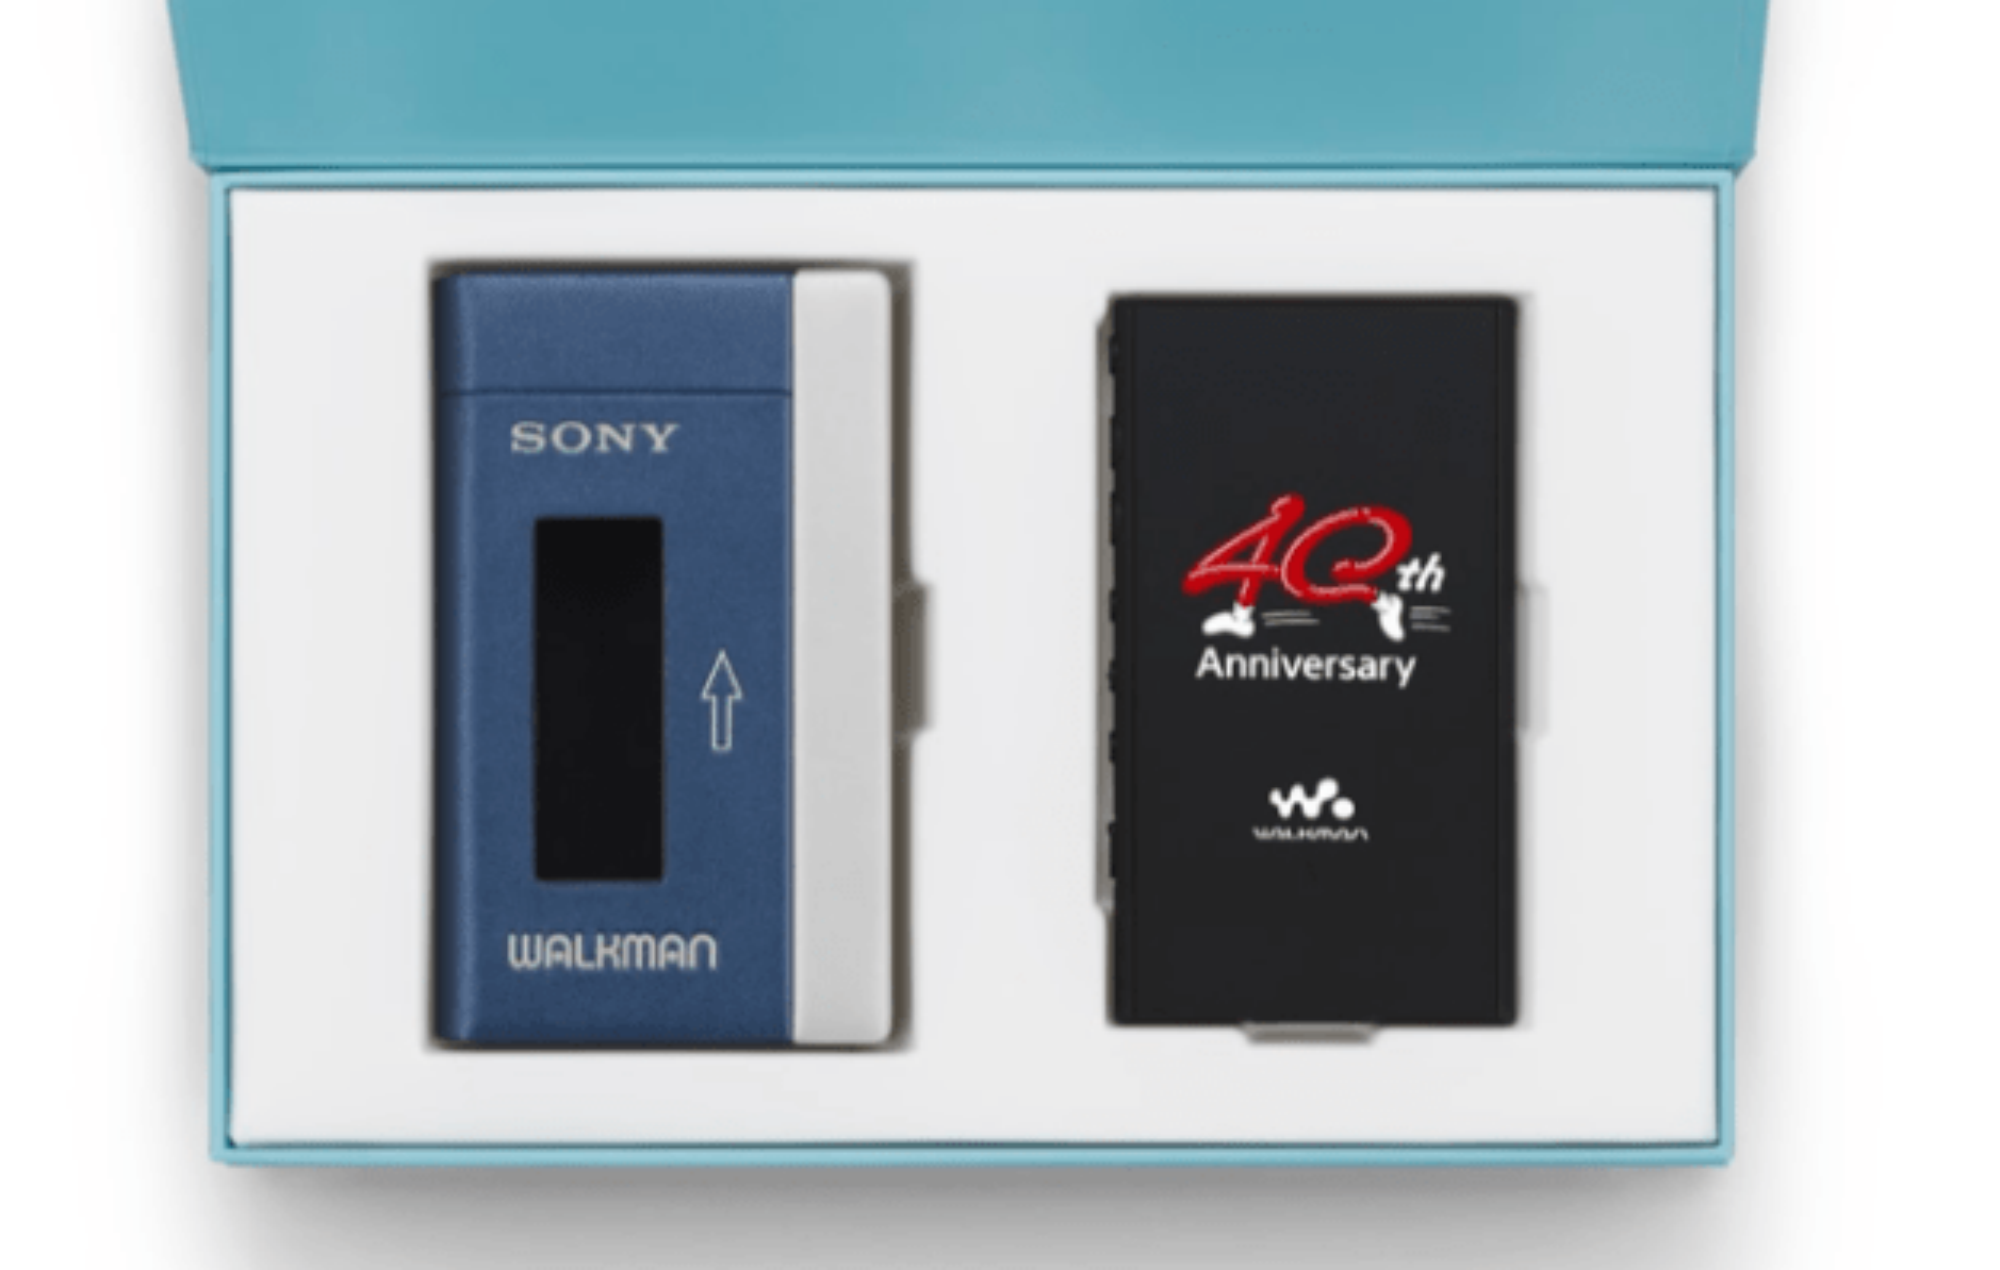 Sony to release retro Walkman to mark 40th anniversary - The